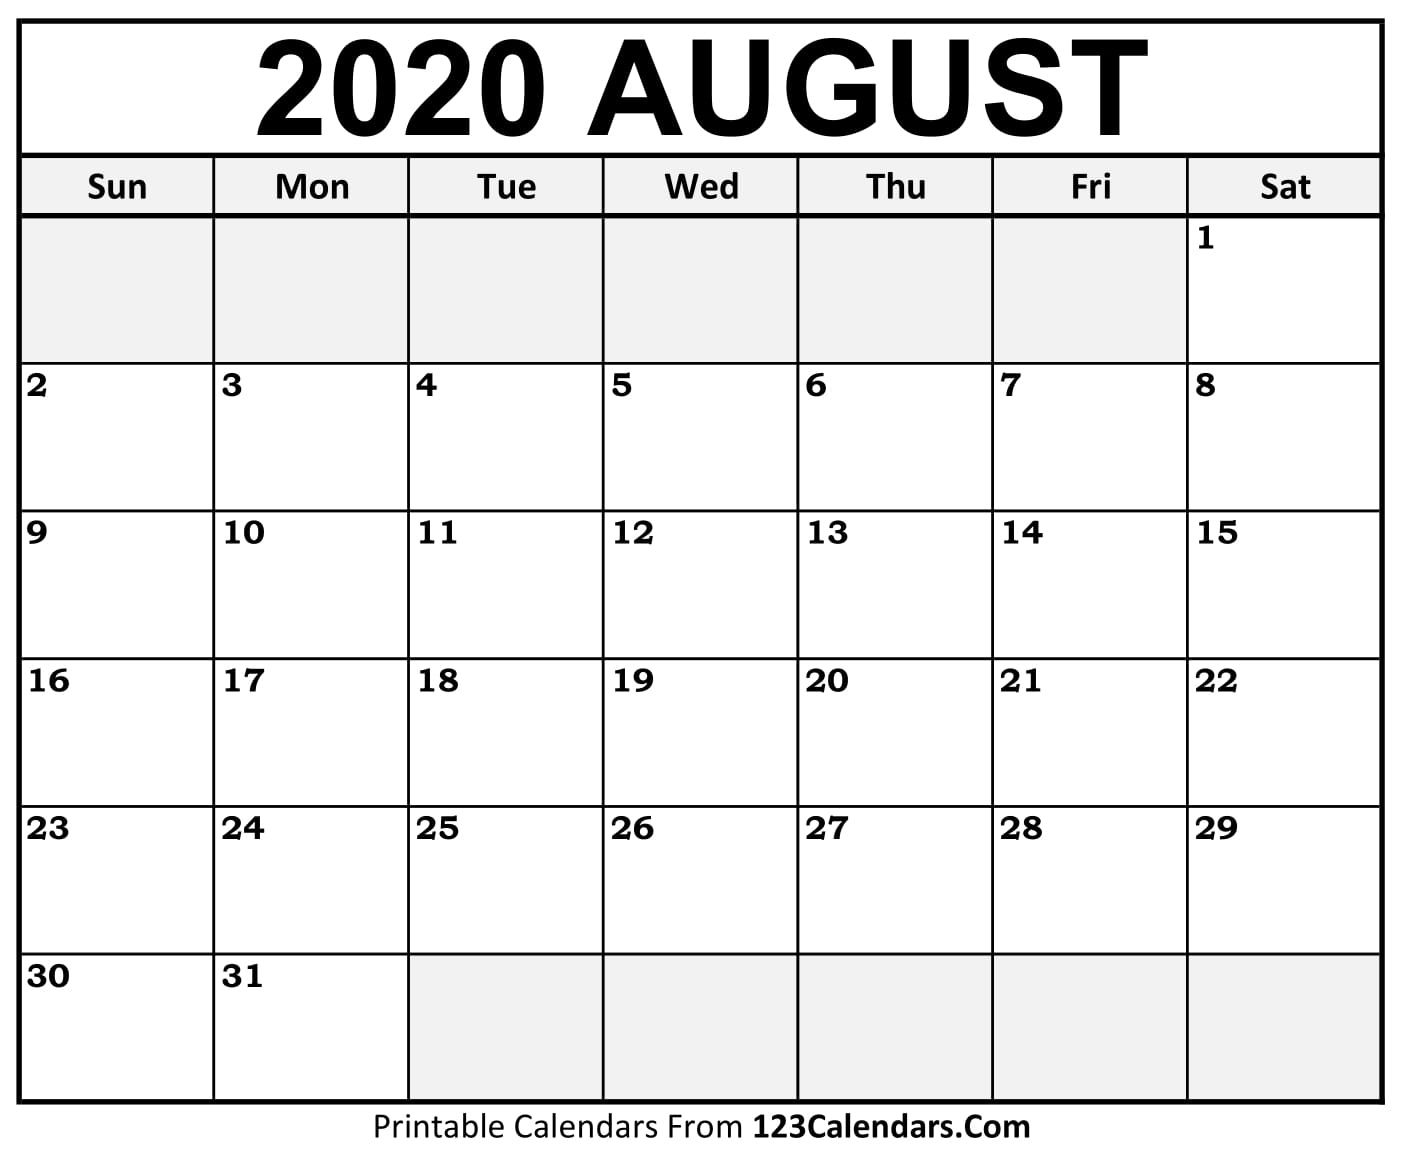 August 2020 Printable Calendar | 123Calendars pertaining to January 2020 Calendar 123Calendars